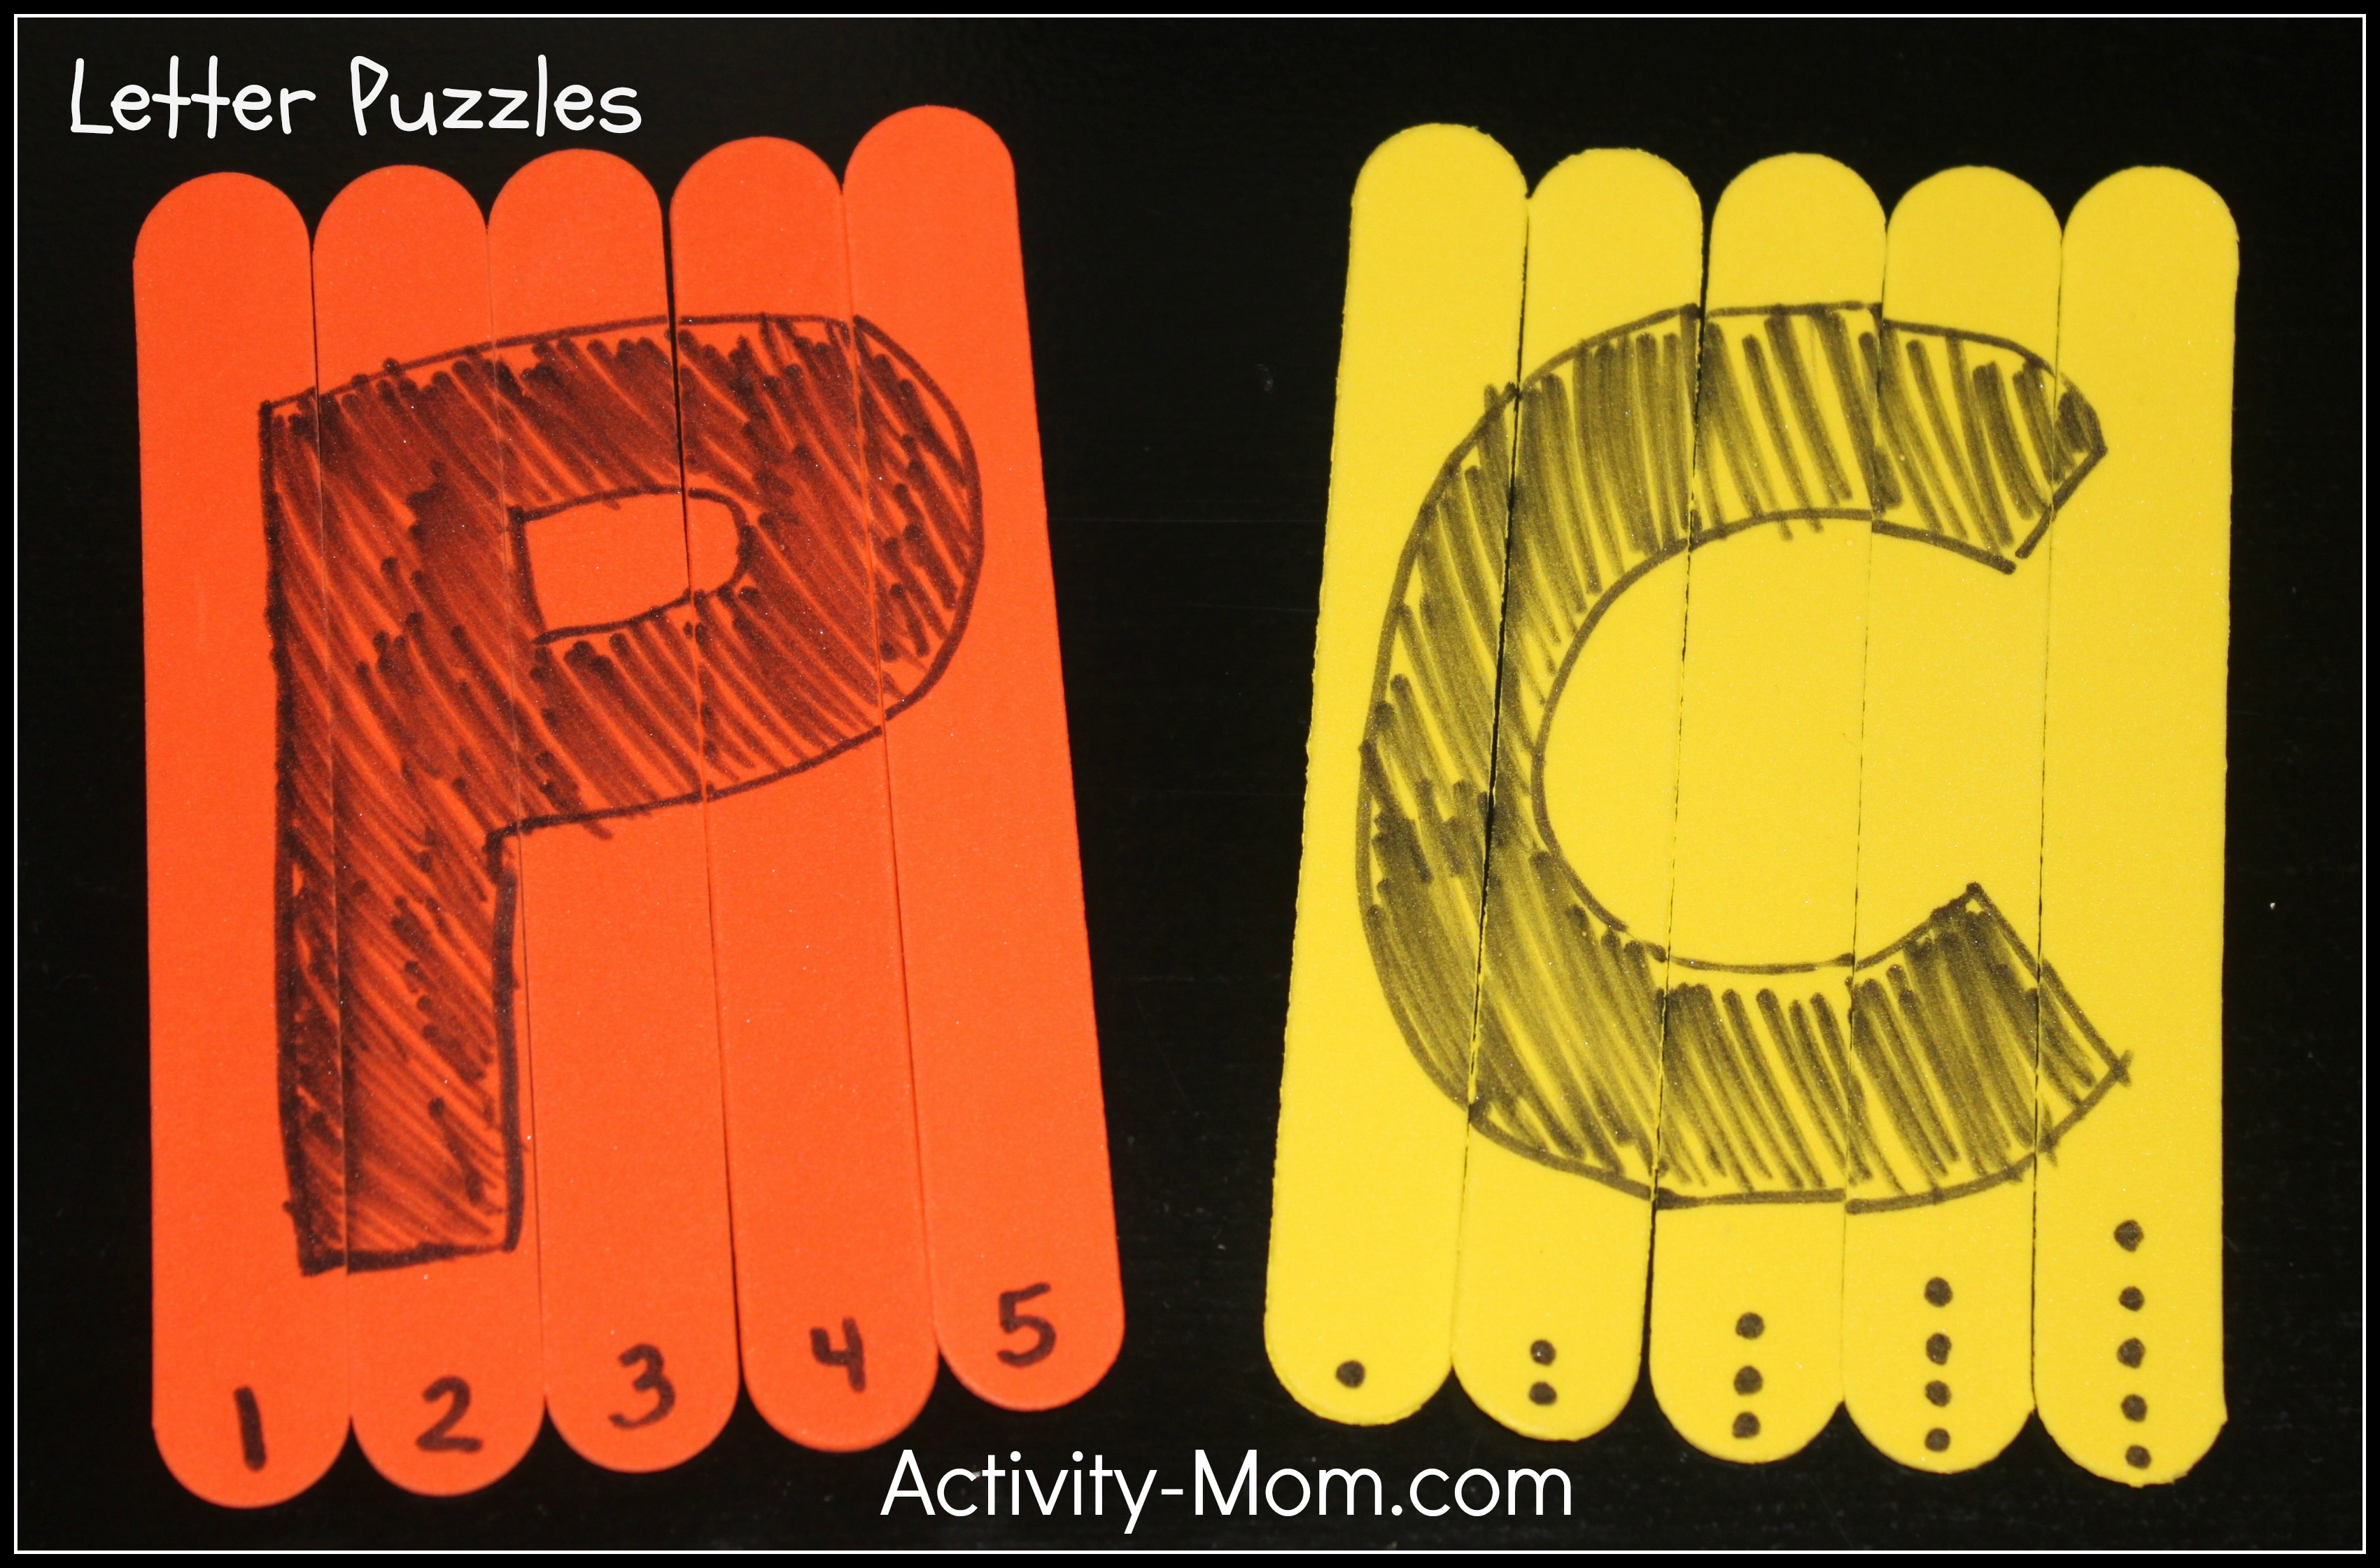 Letter Puzzles - The Activity Mom